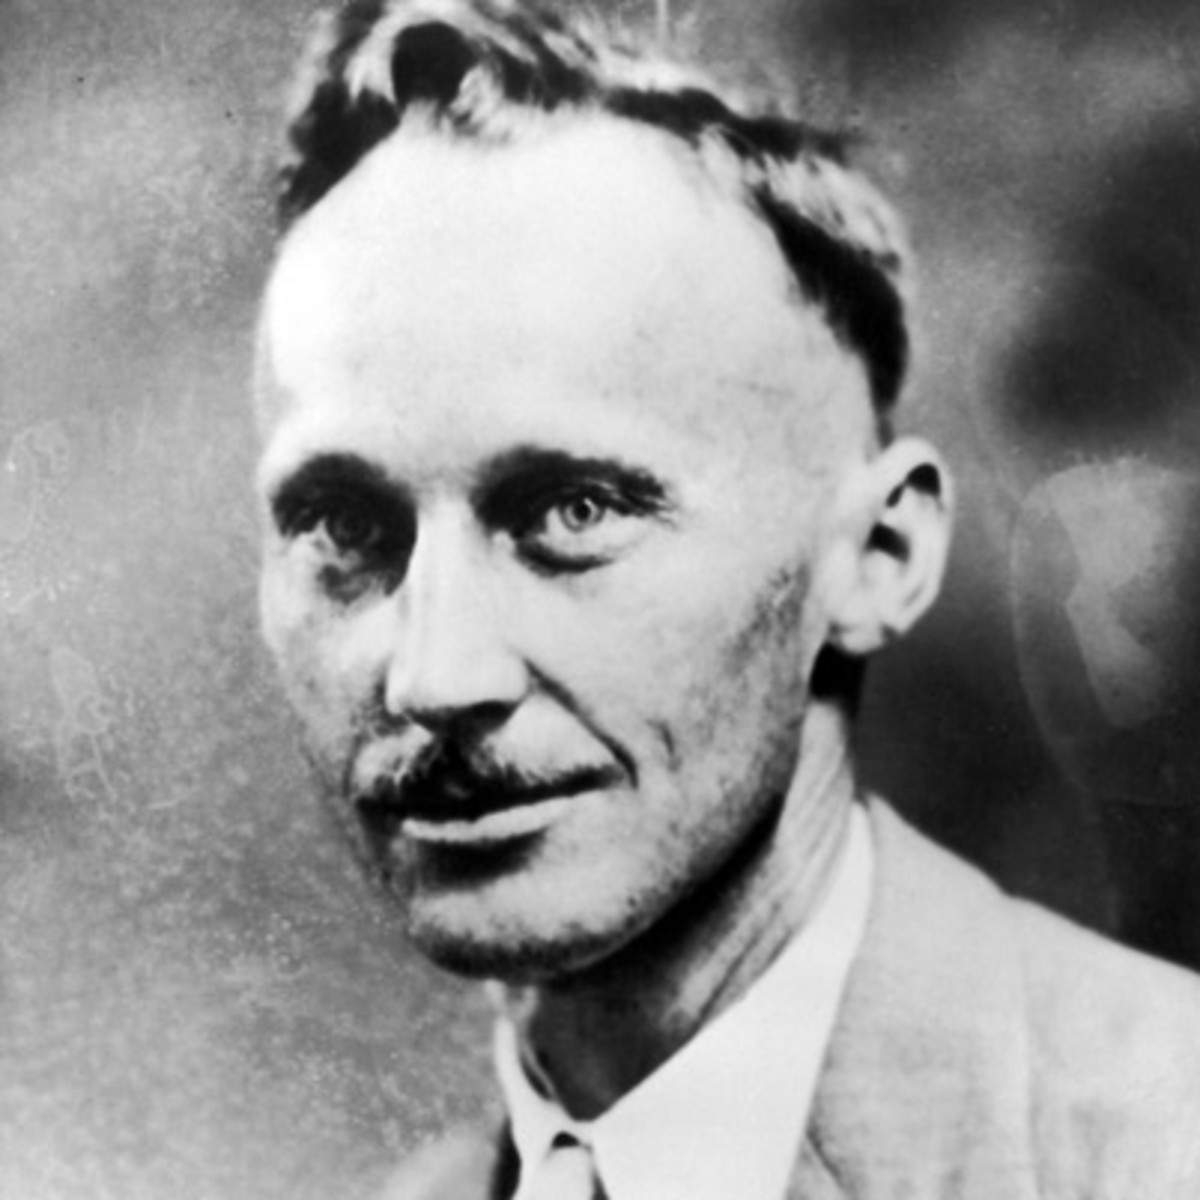 john scopes trial essay Online shopping from a great selection at books store.